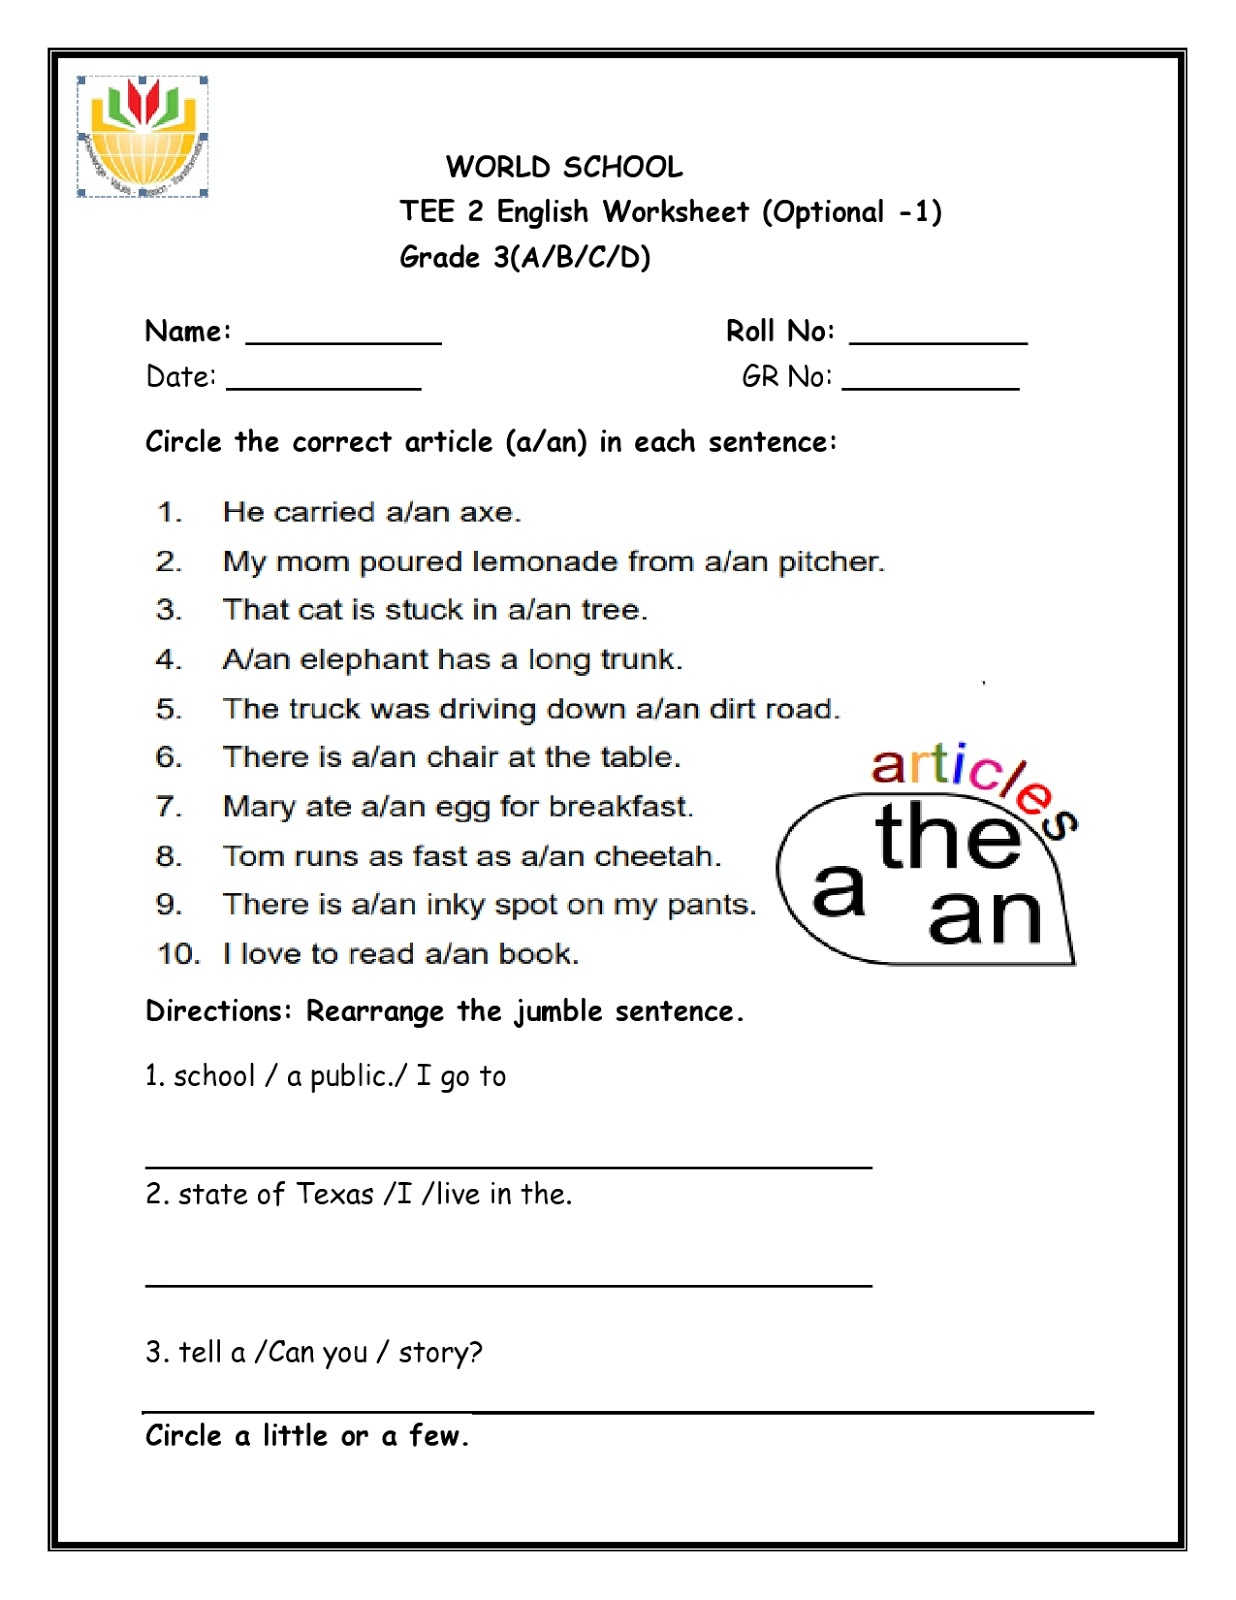 Birla World School Oman Revision Worksheet For Grade 3 As